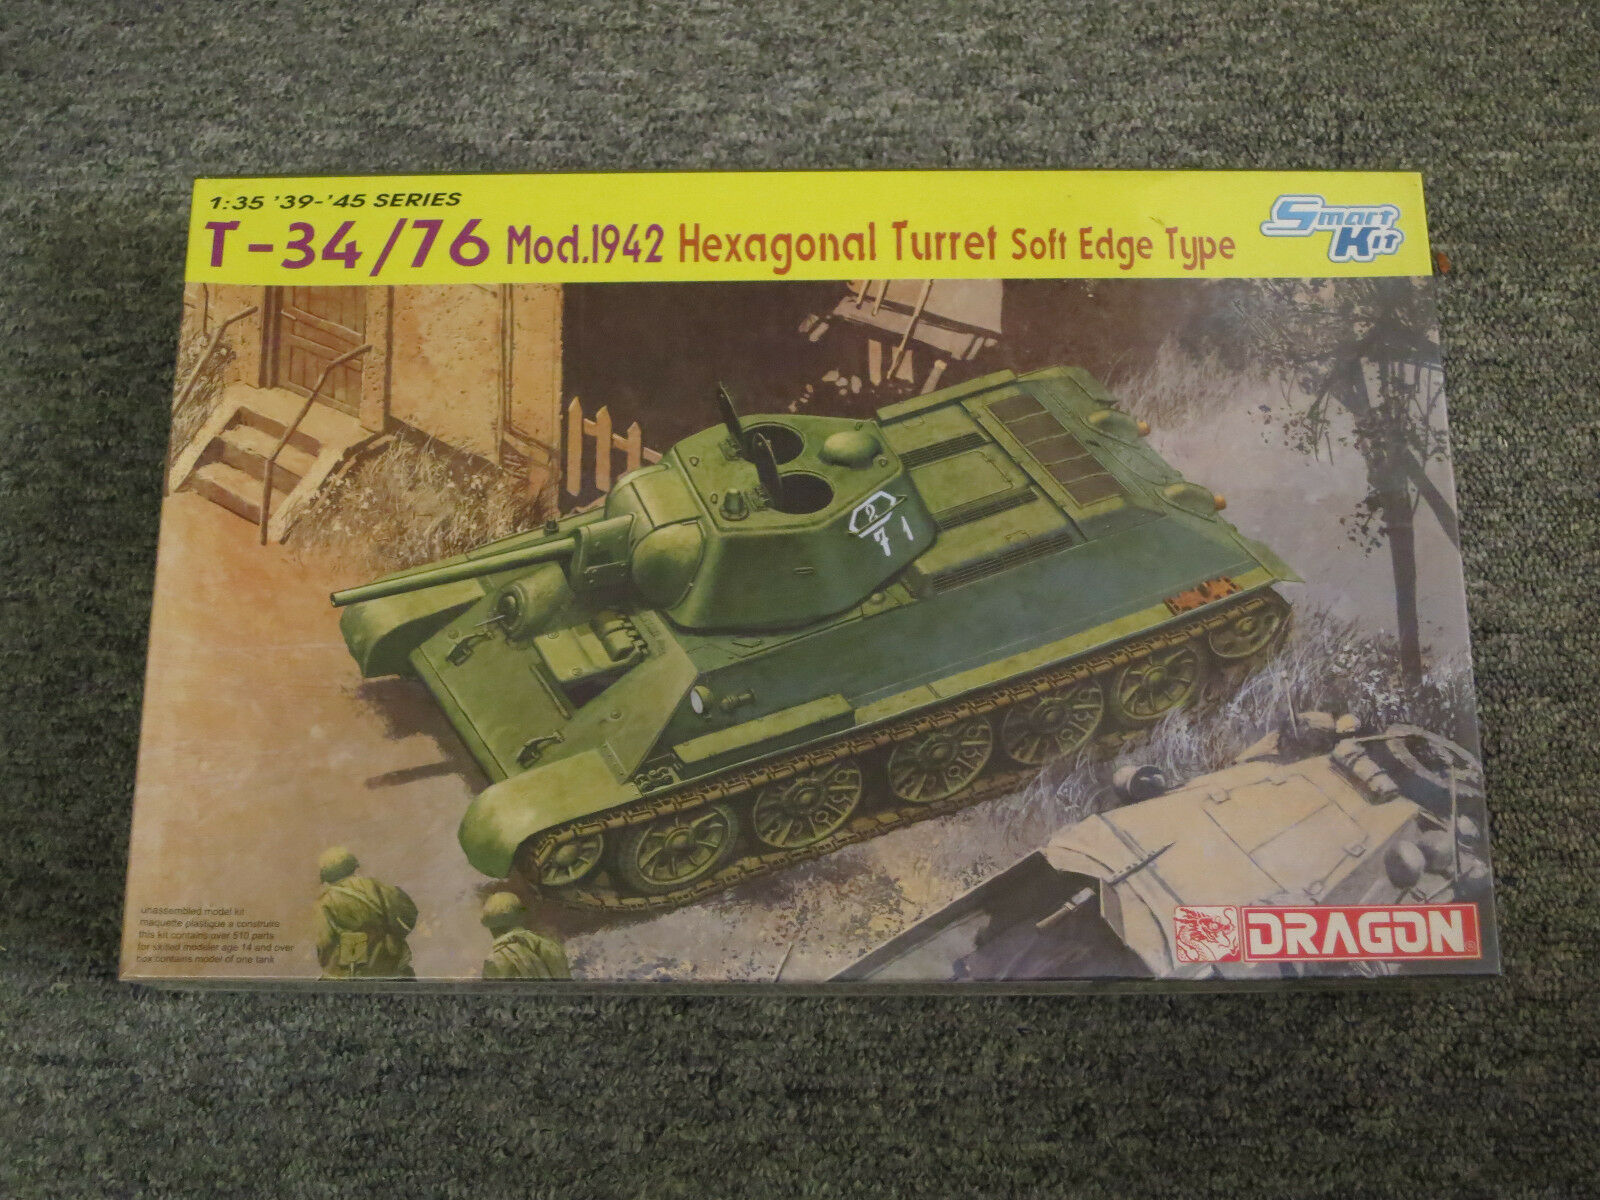 Dragon 1 35 T-34 76 Mod.1942 Hexagonal Turret SET Model Kit '39-'45 Series